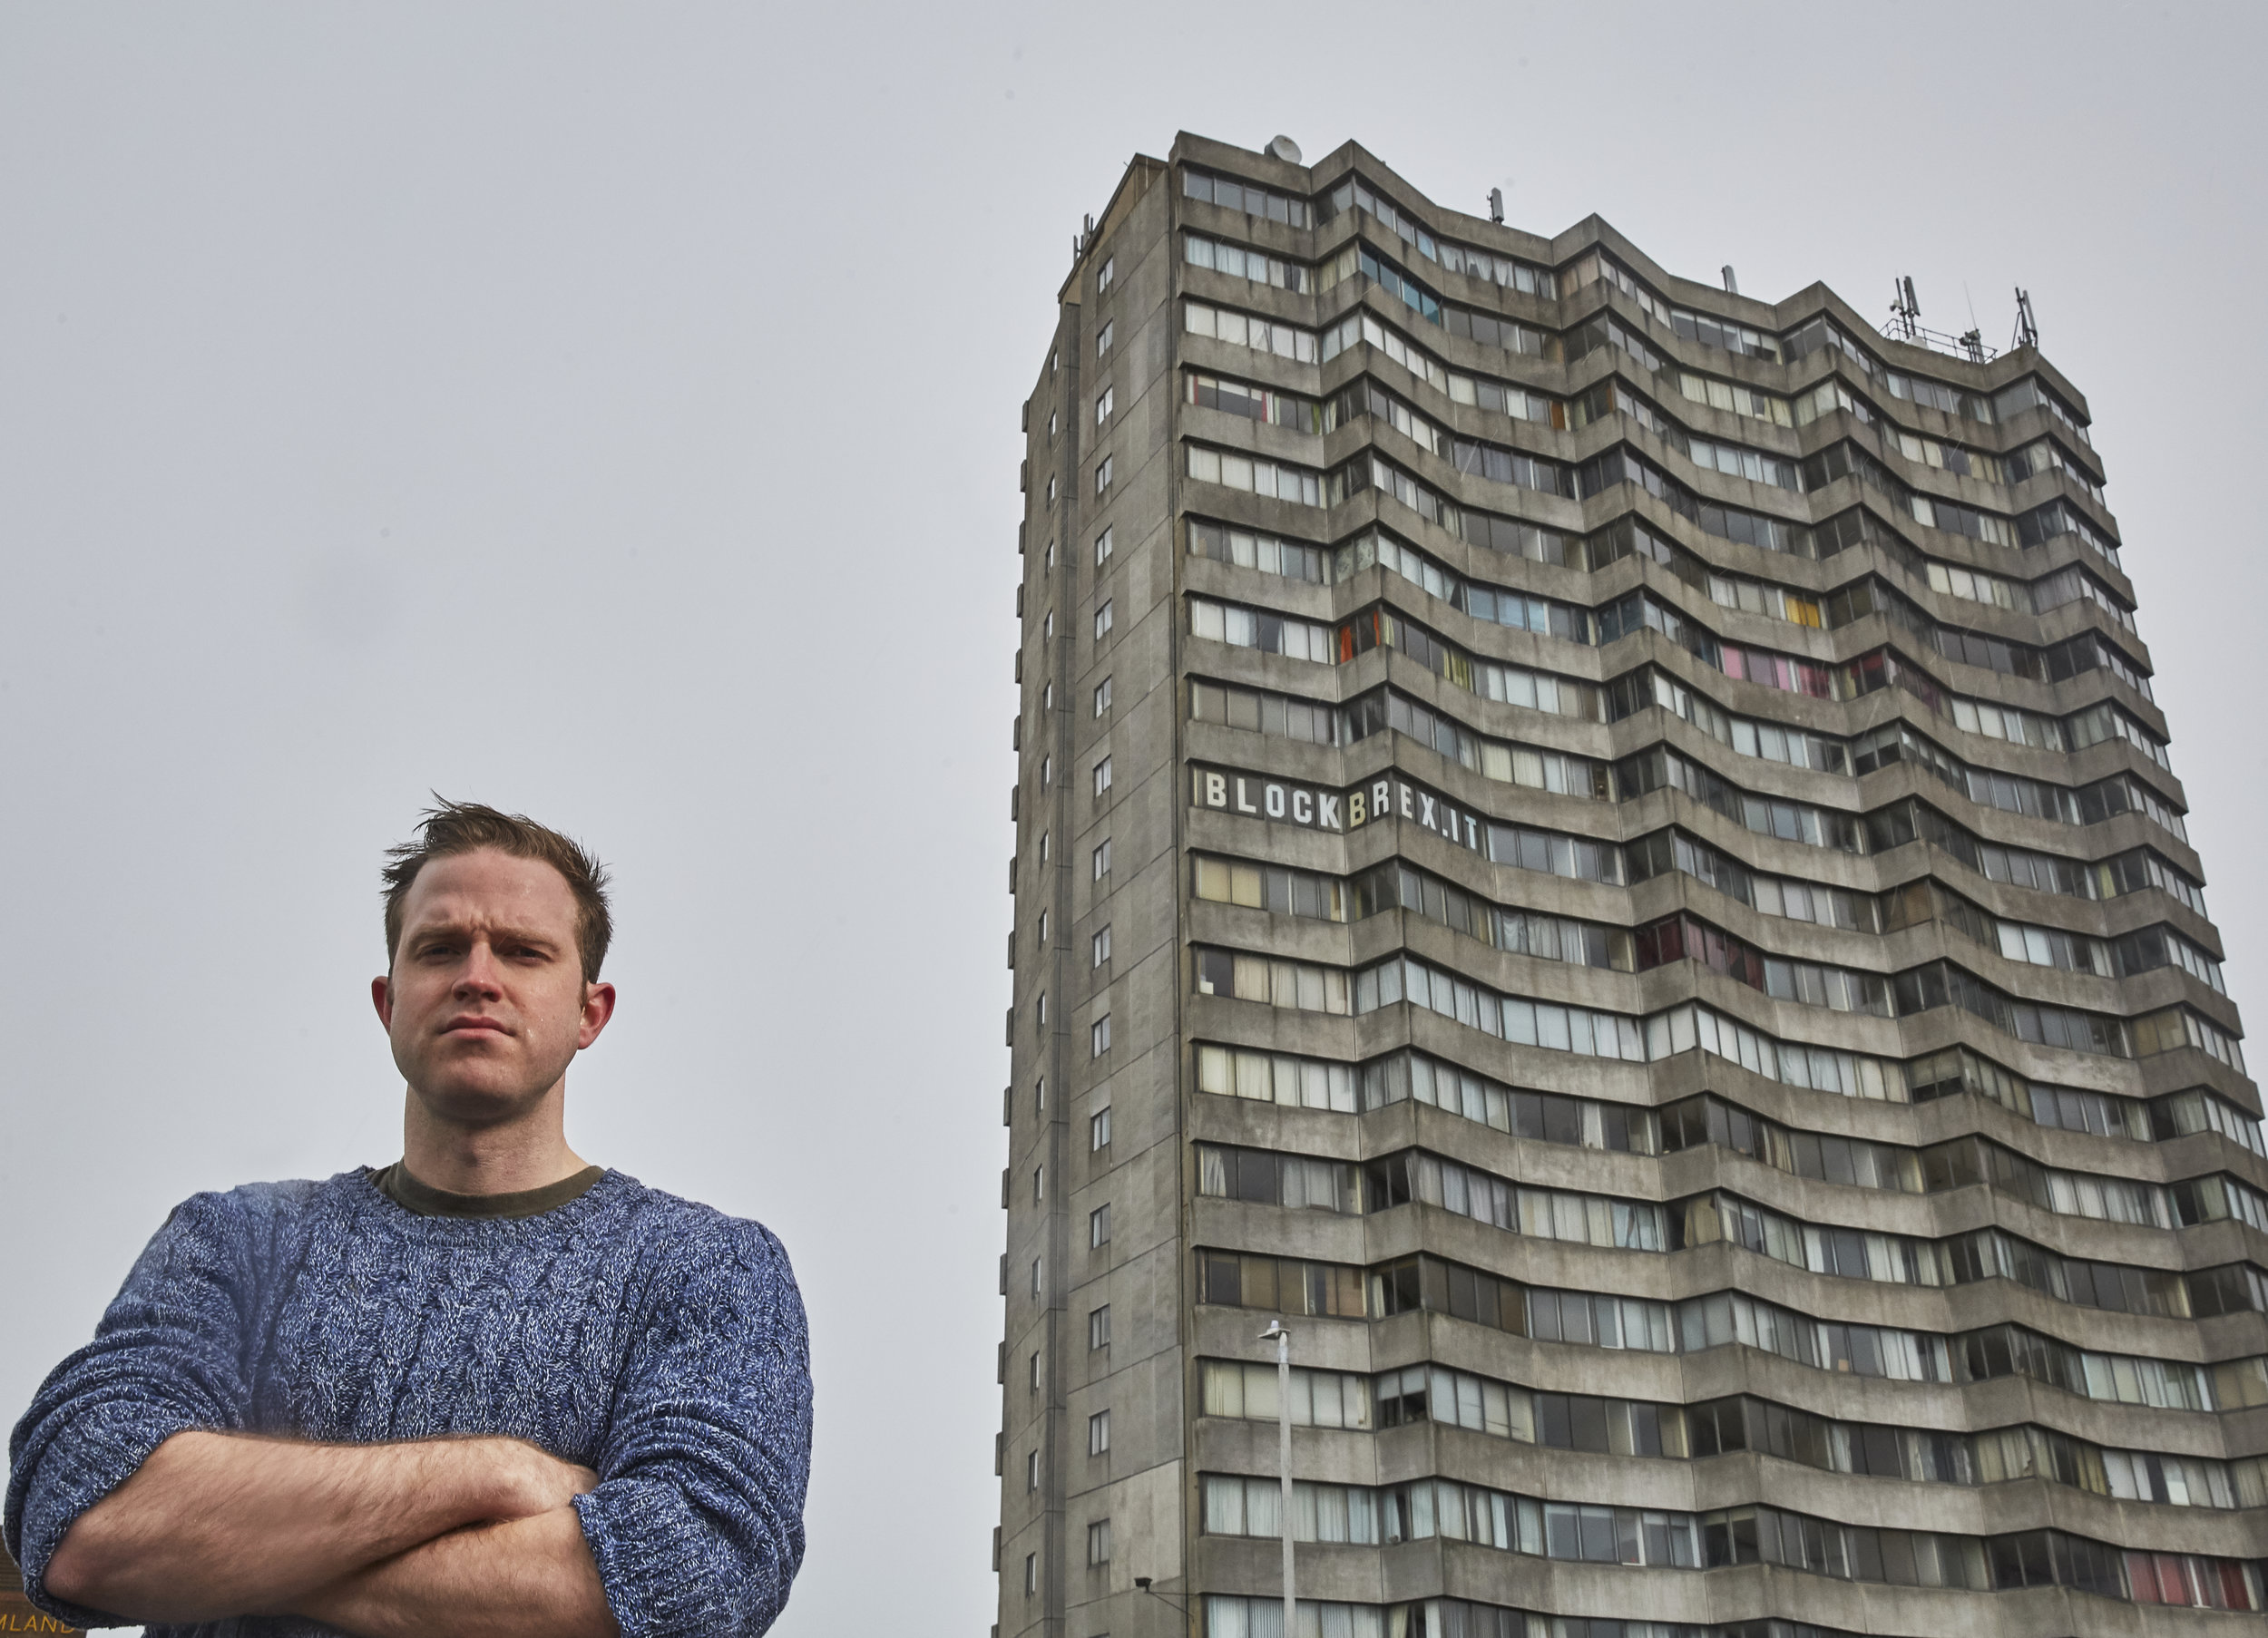 Pictured: Rob Yates next to Arlington Tower, Margate. Photo: Joel Knight, 2018.